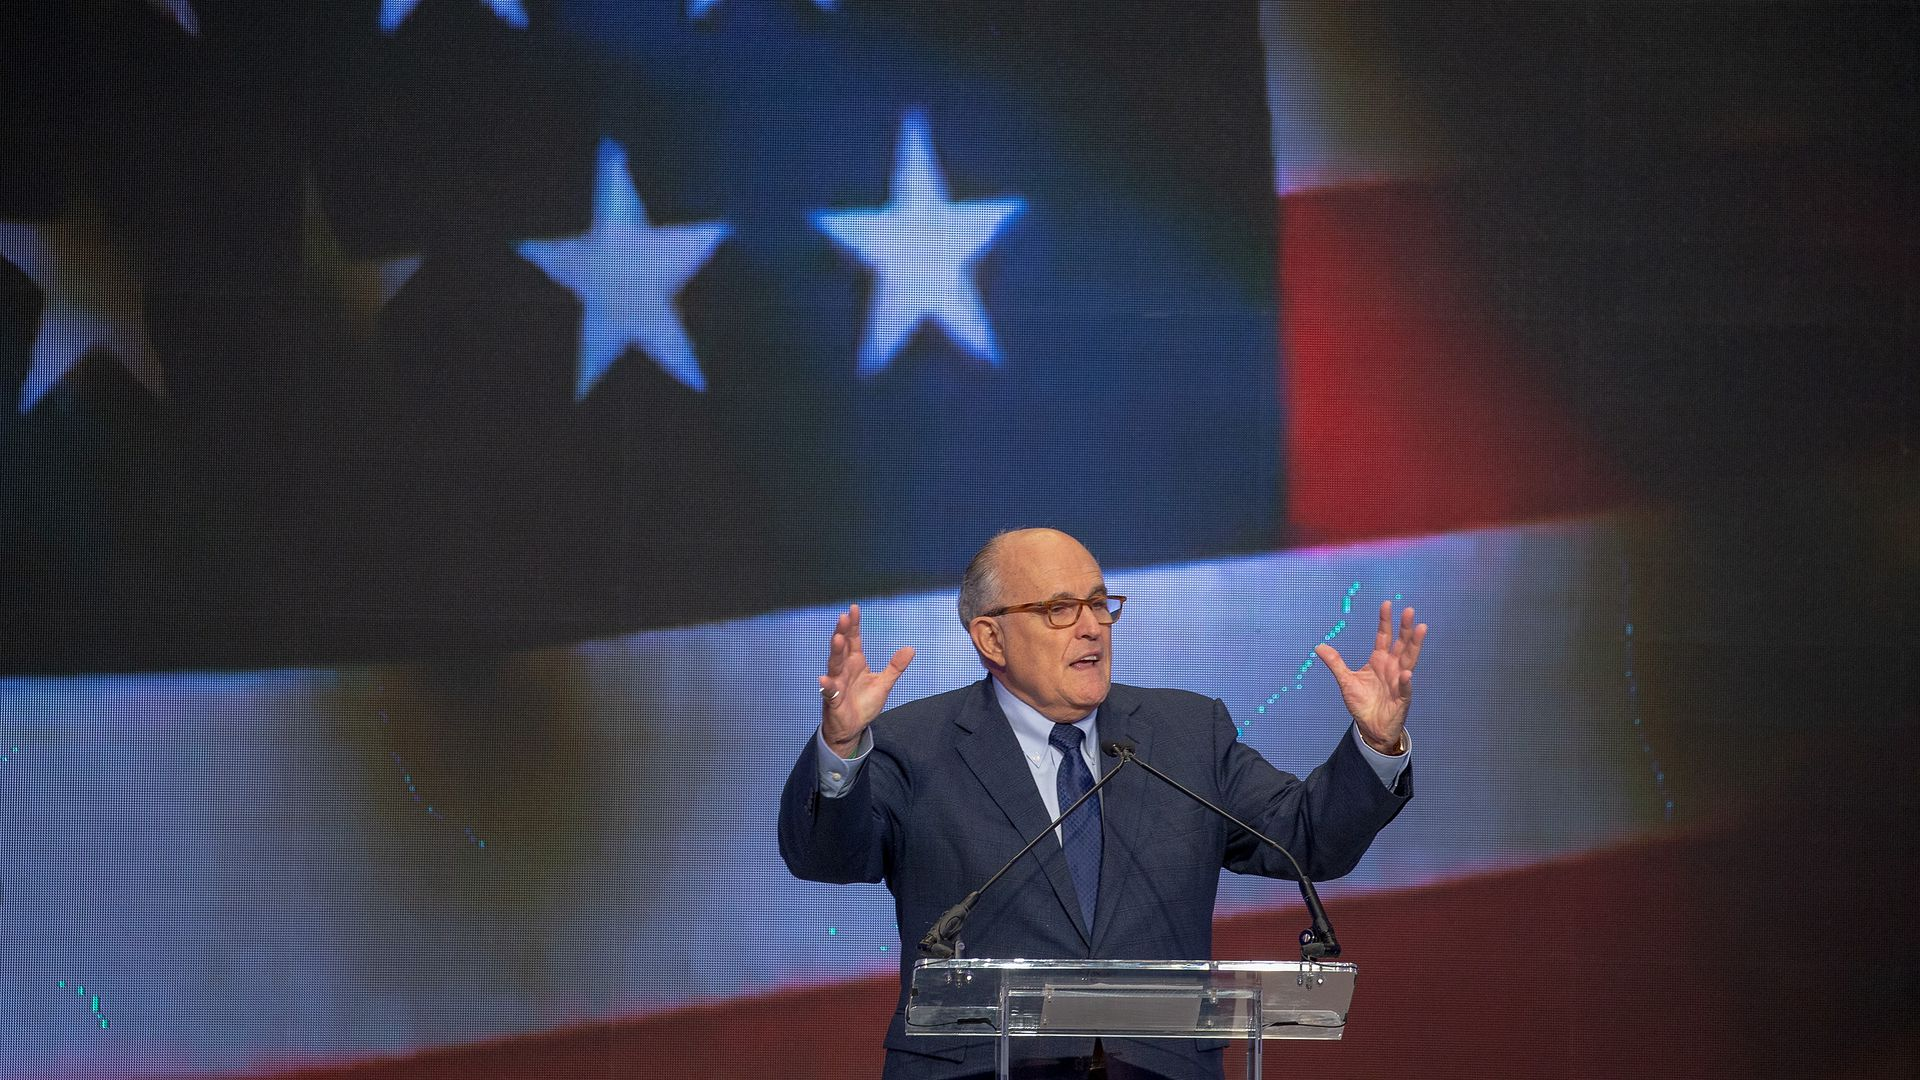 President Trump attorney Rudy Giuliani. Photo: Tasos Katopodis/Getty Images